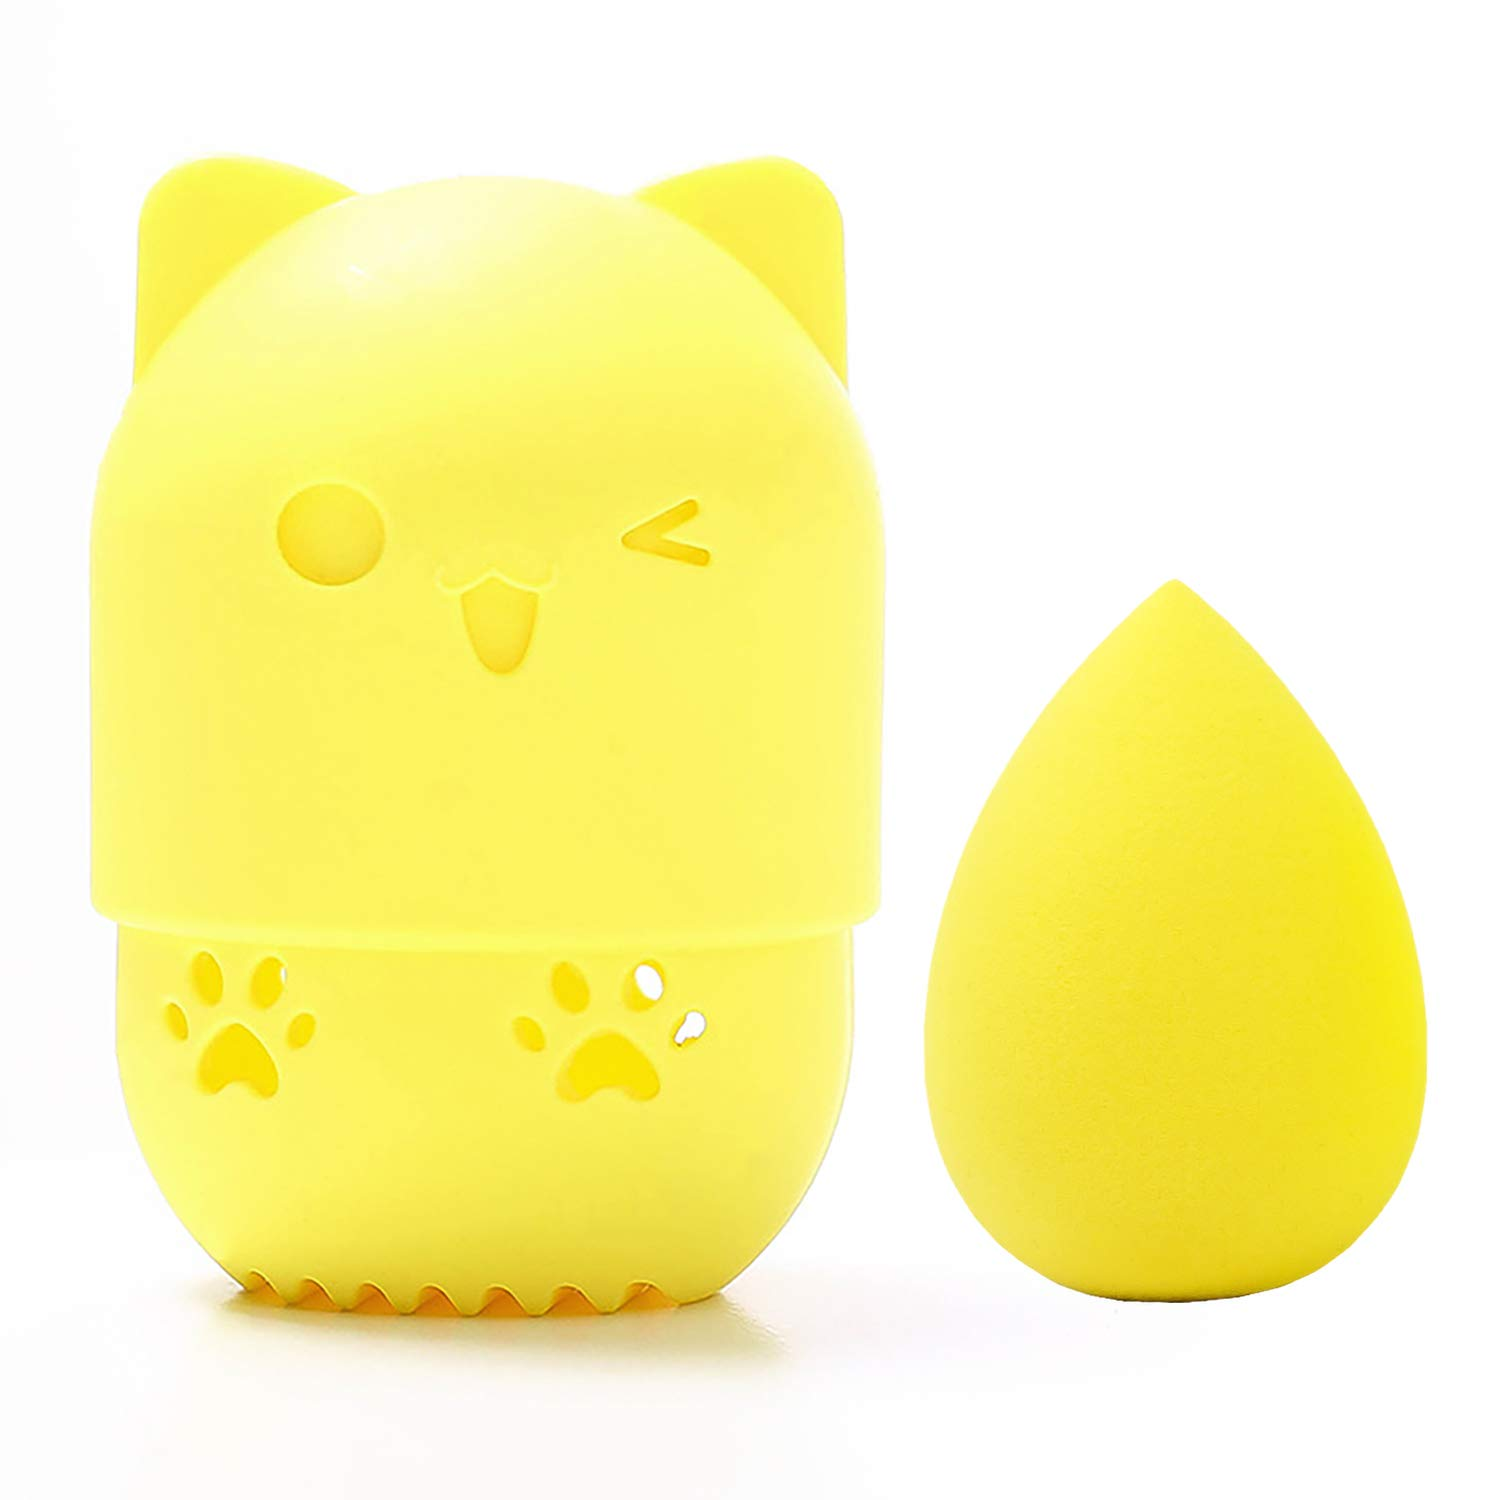 [Allure & Co.] Soft Makeup Sponge and Cute Cat Shaped Container Set - Travel Case for Beauty Blender (Yellow)